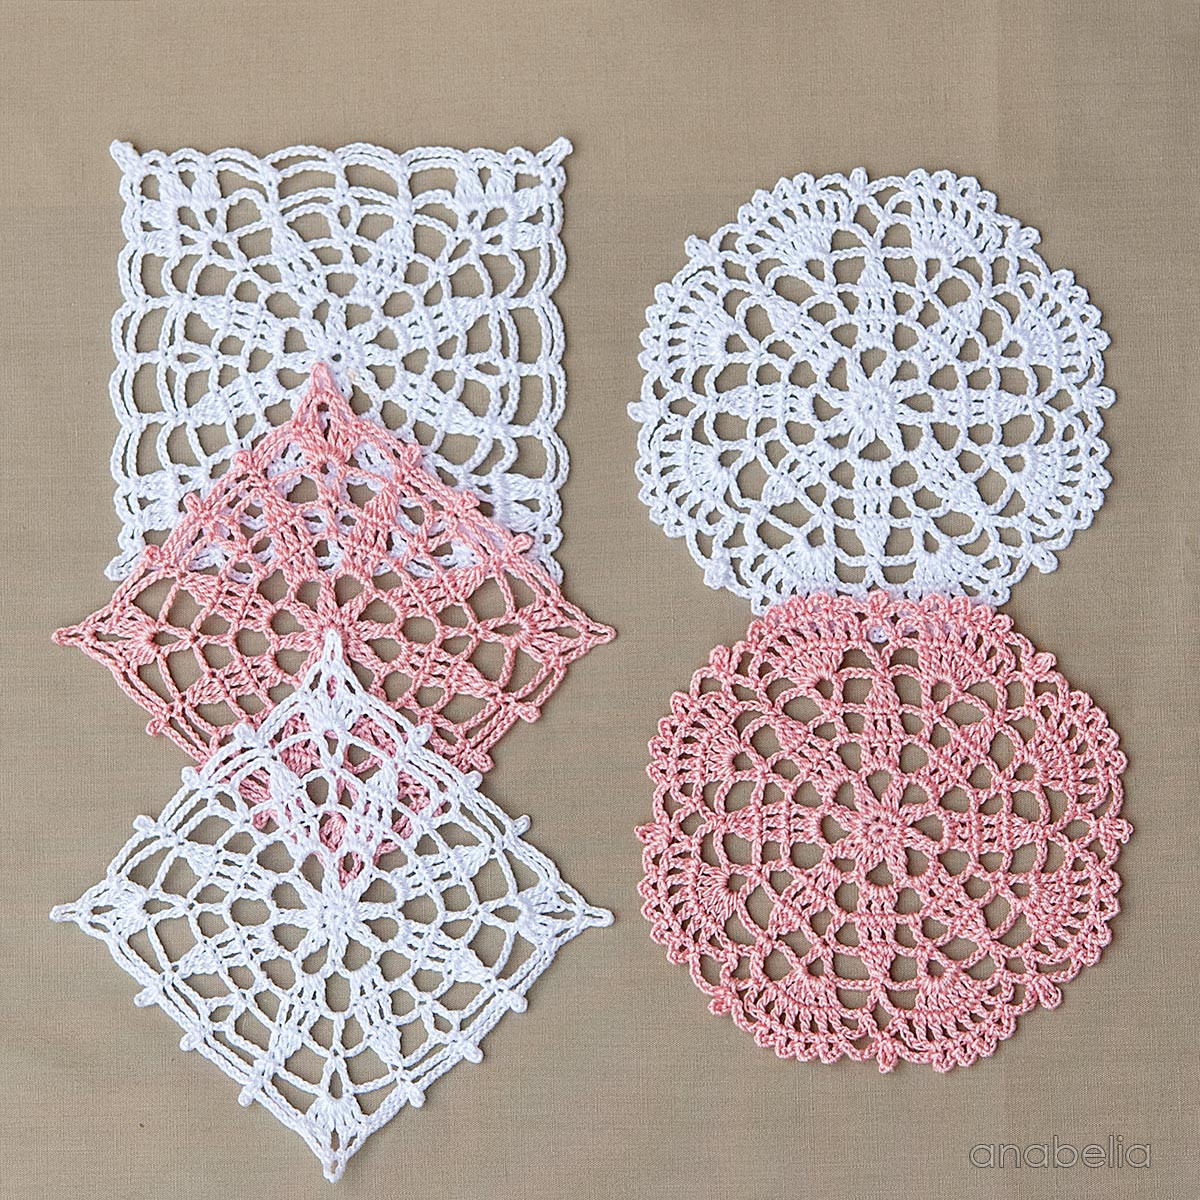 Unique Crochet Lace Motifs In Pink and White Free Patterns Laces Crochet Of Beautiful 47 Images Laces Crochet